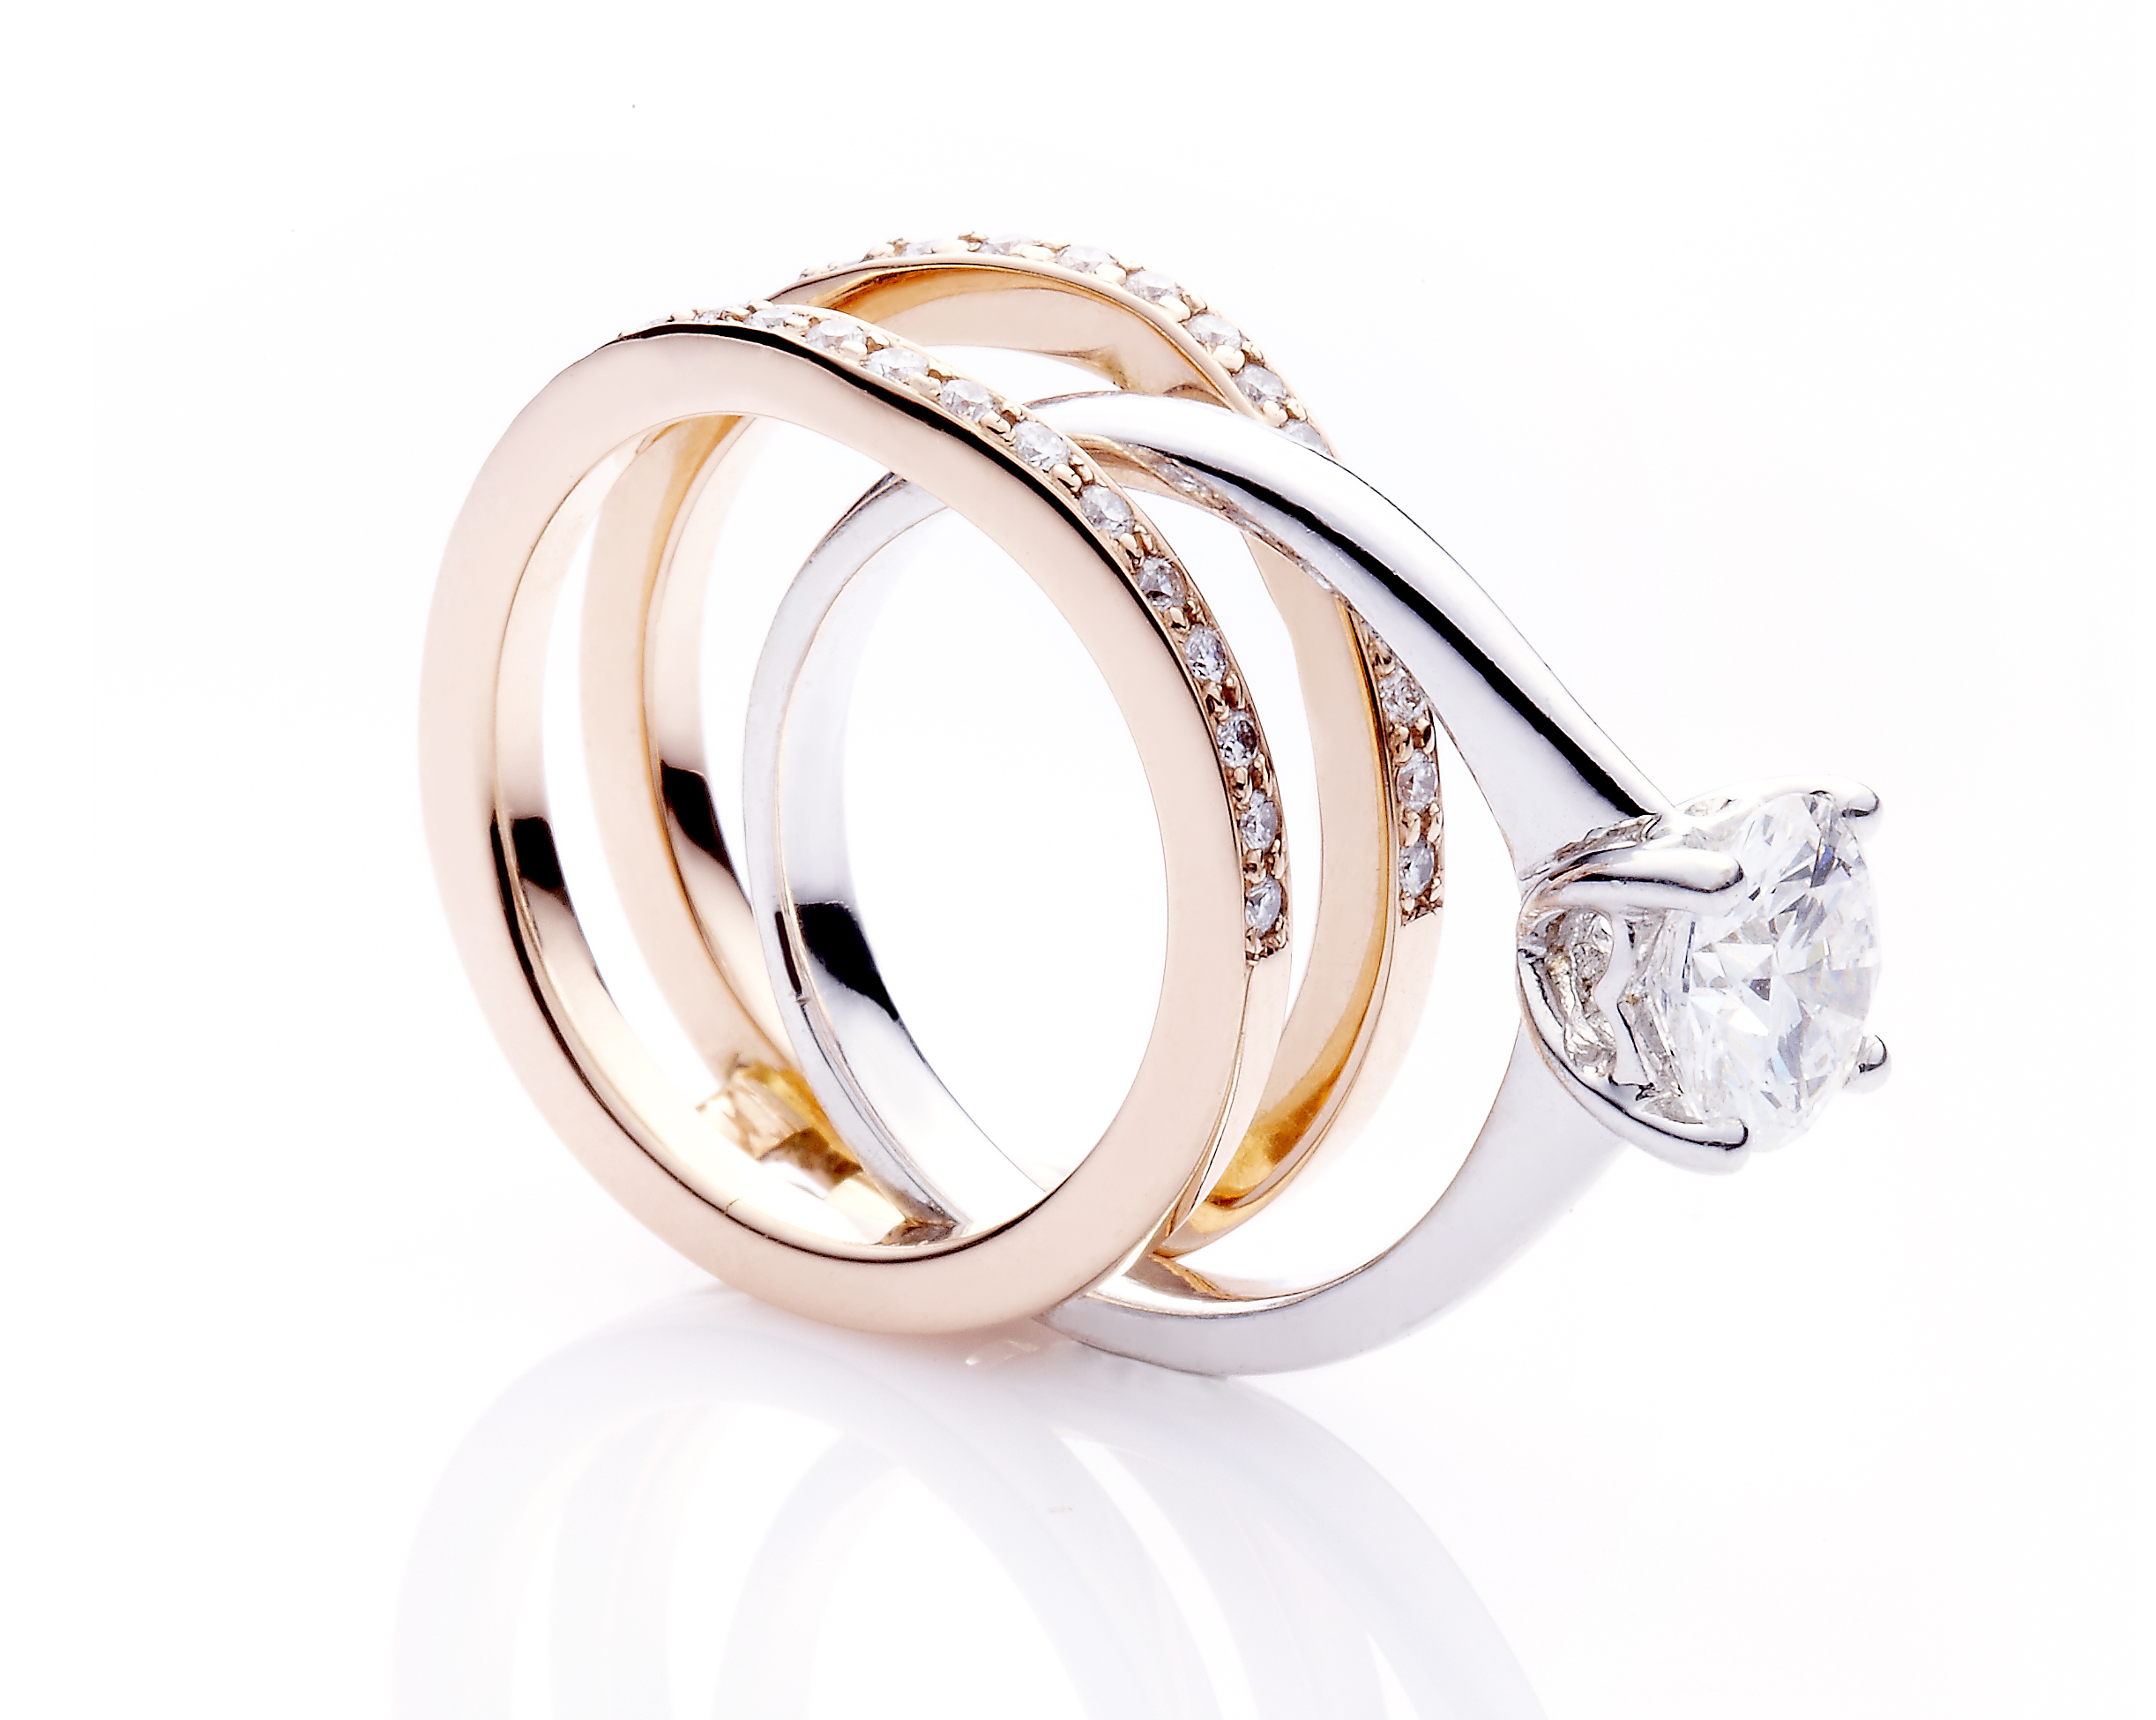 jewellery pages get s where quick long rings jewelers banner wedding image links to new